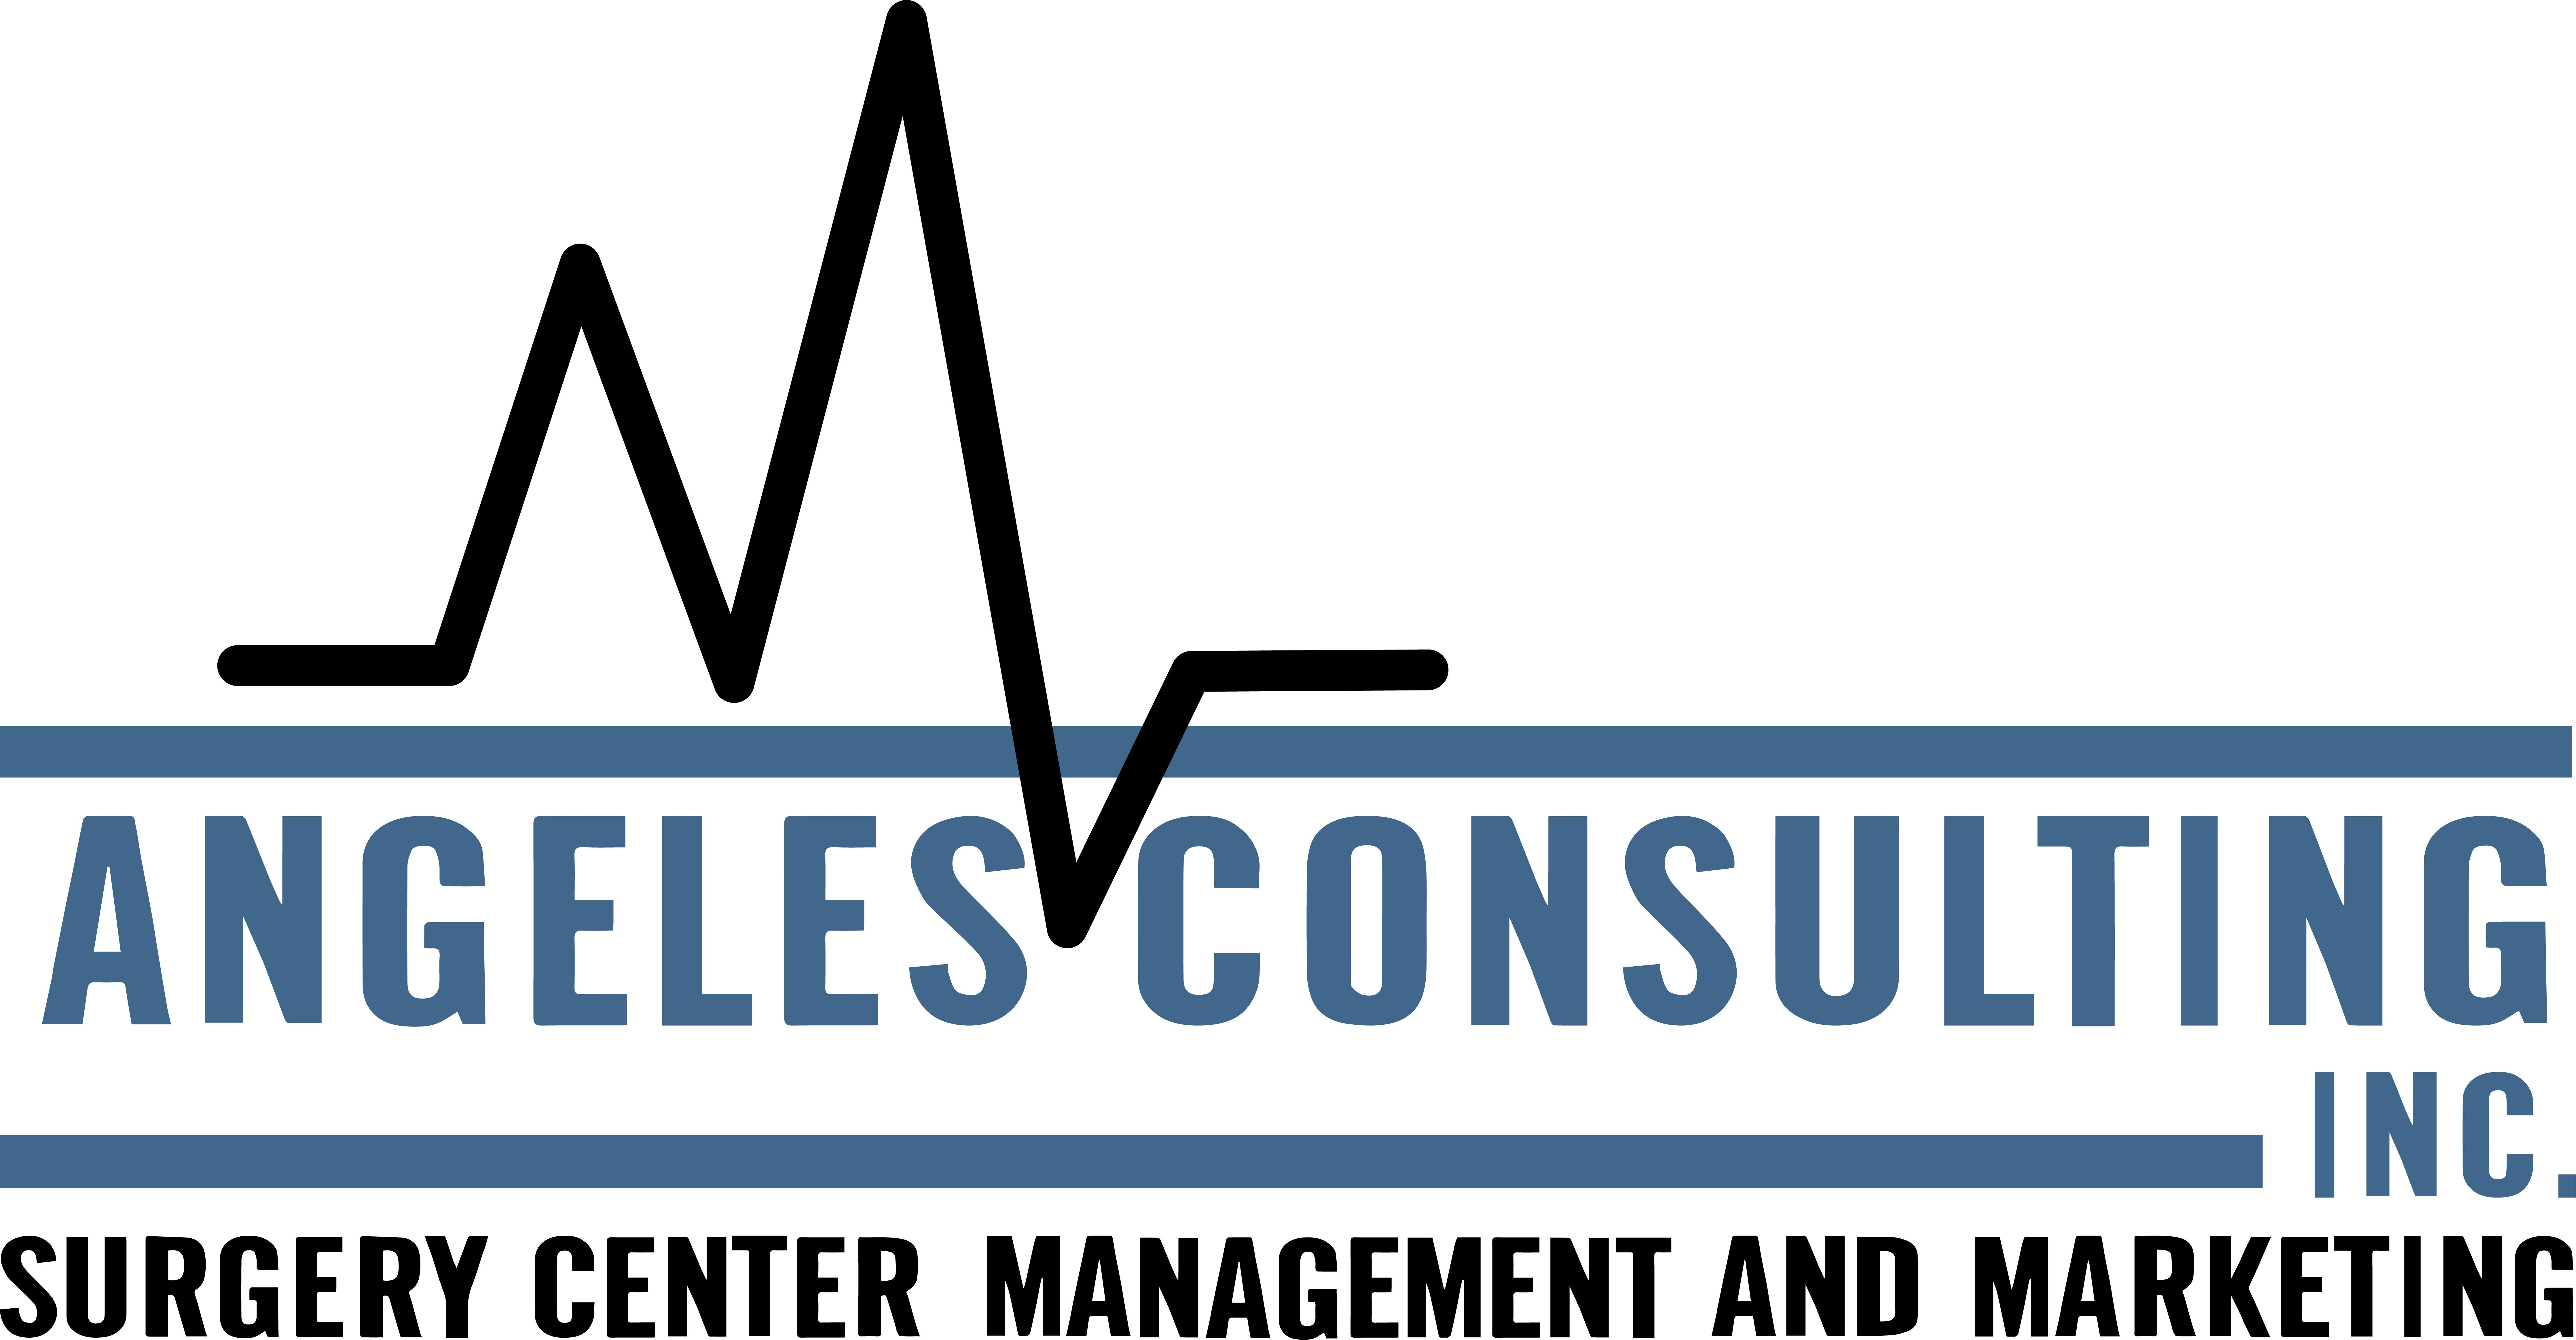 Angeles Consulting, Inc.